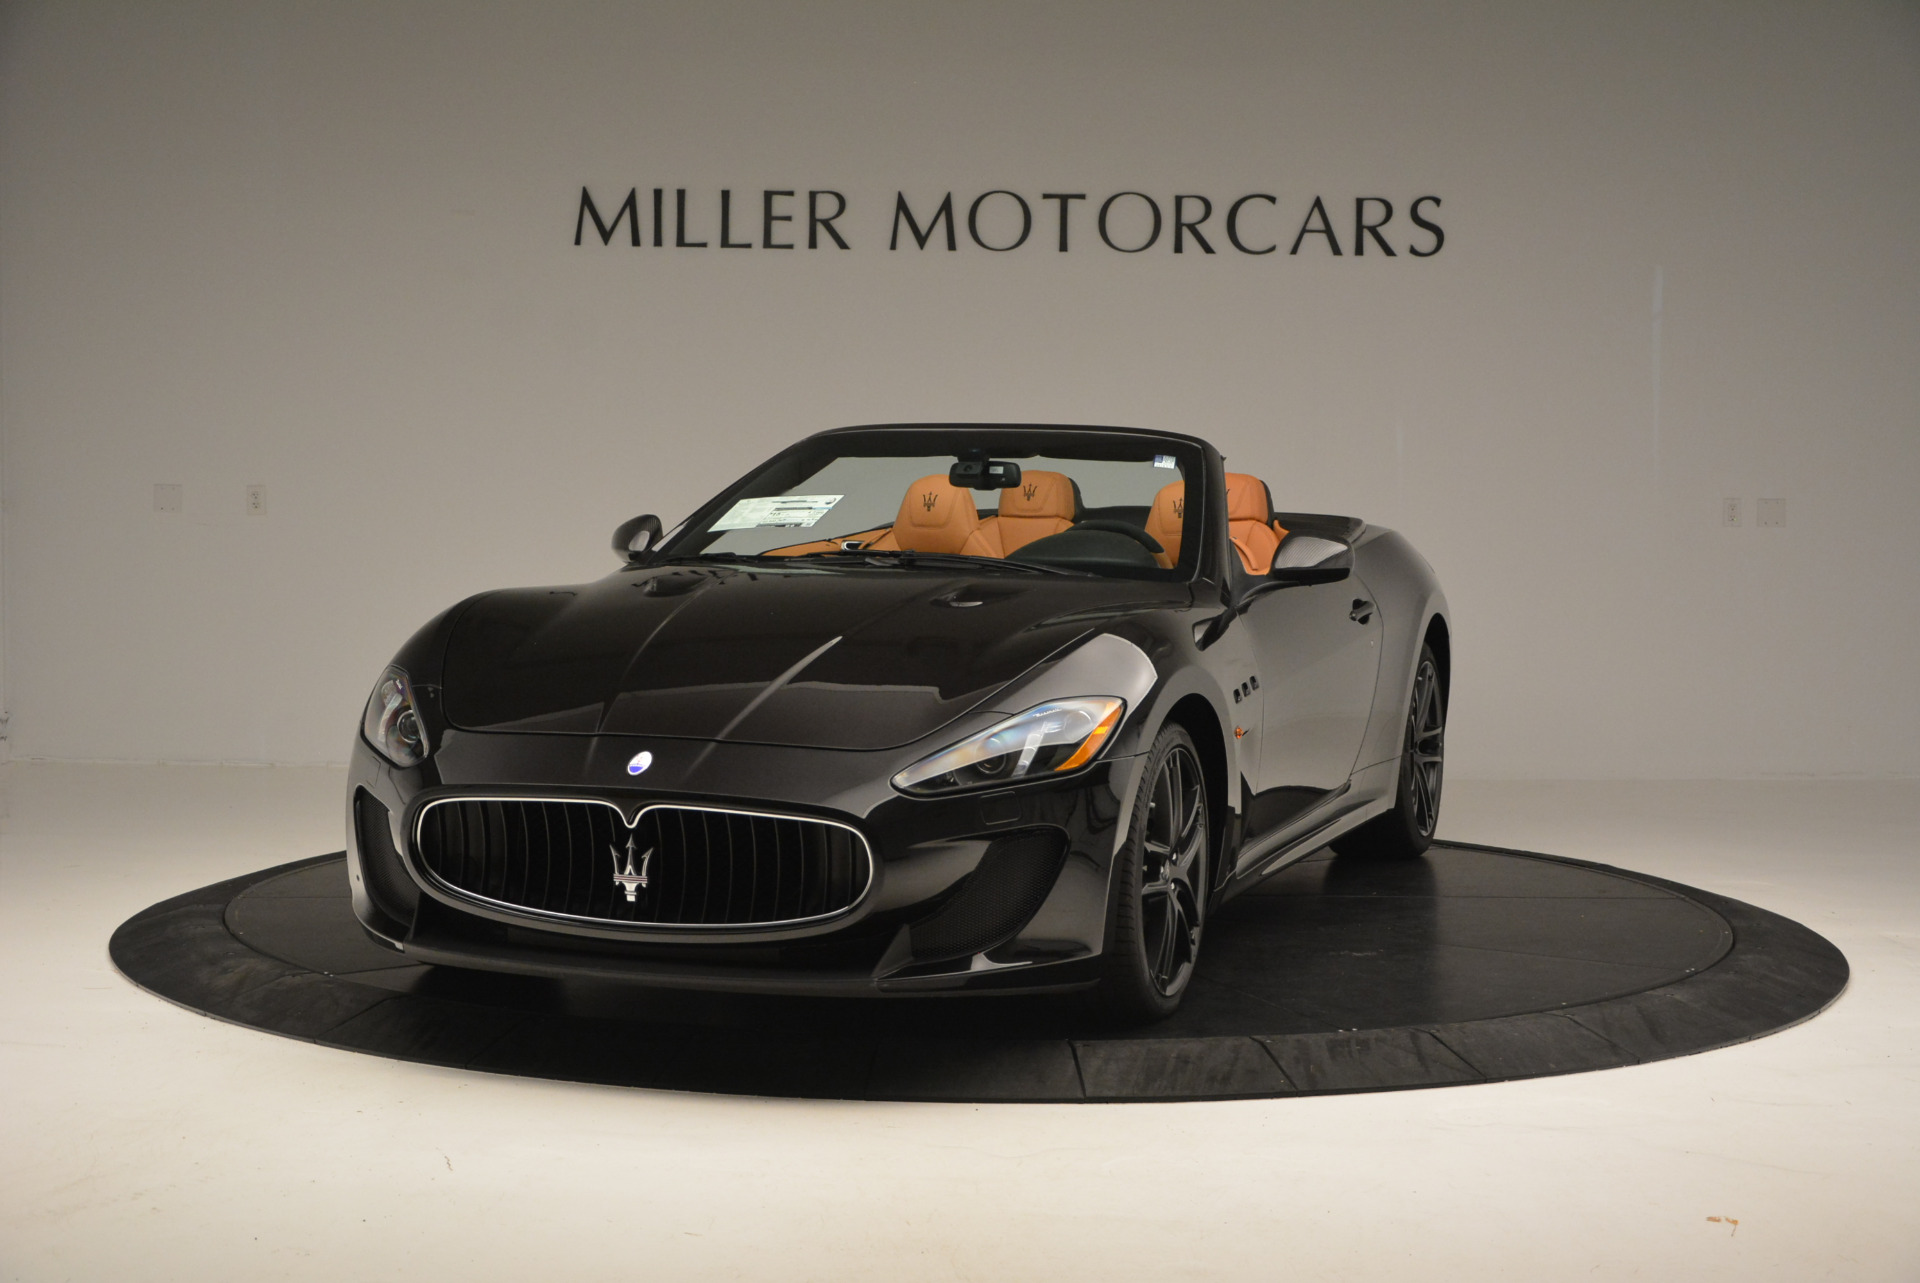 New 2017 Maserati GranTurismo MC CONVERTIBLE For Sale In Greenwich, CT 596_main